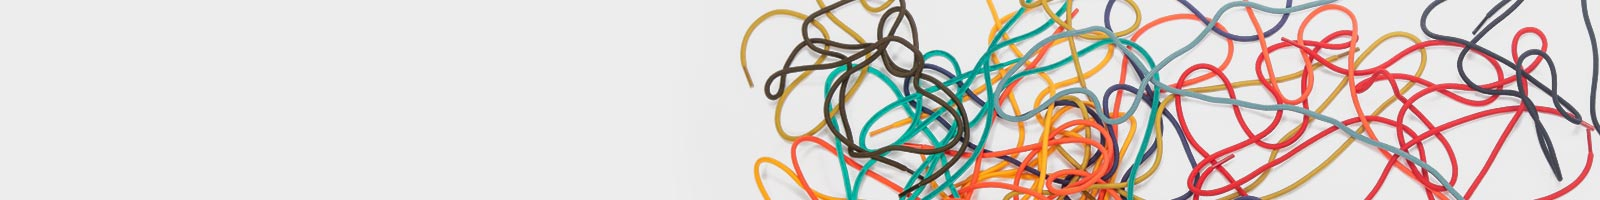 Colorful shoe laces sprawling all over the place.